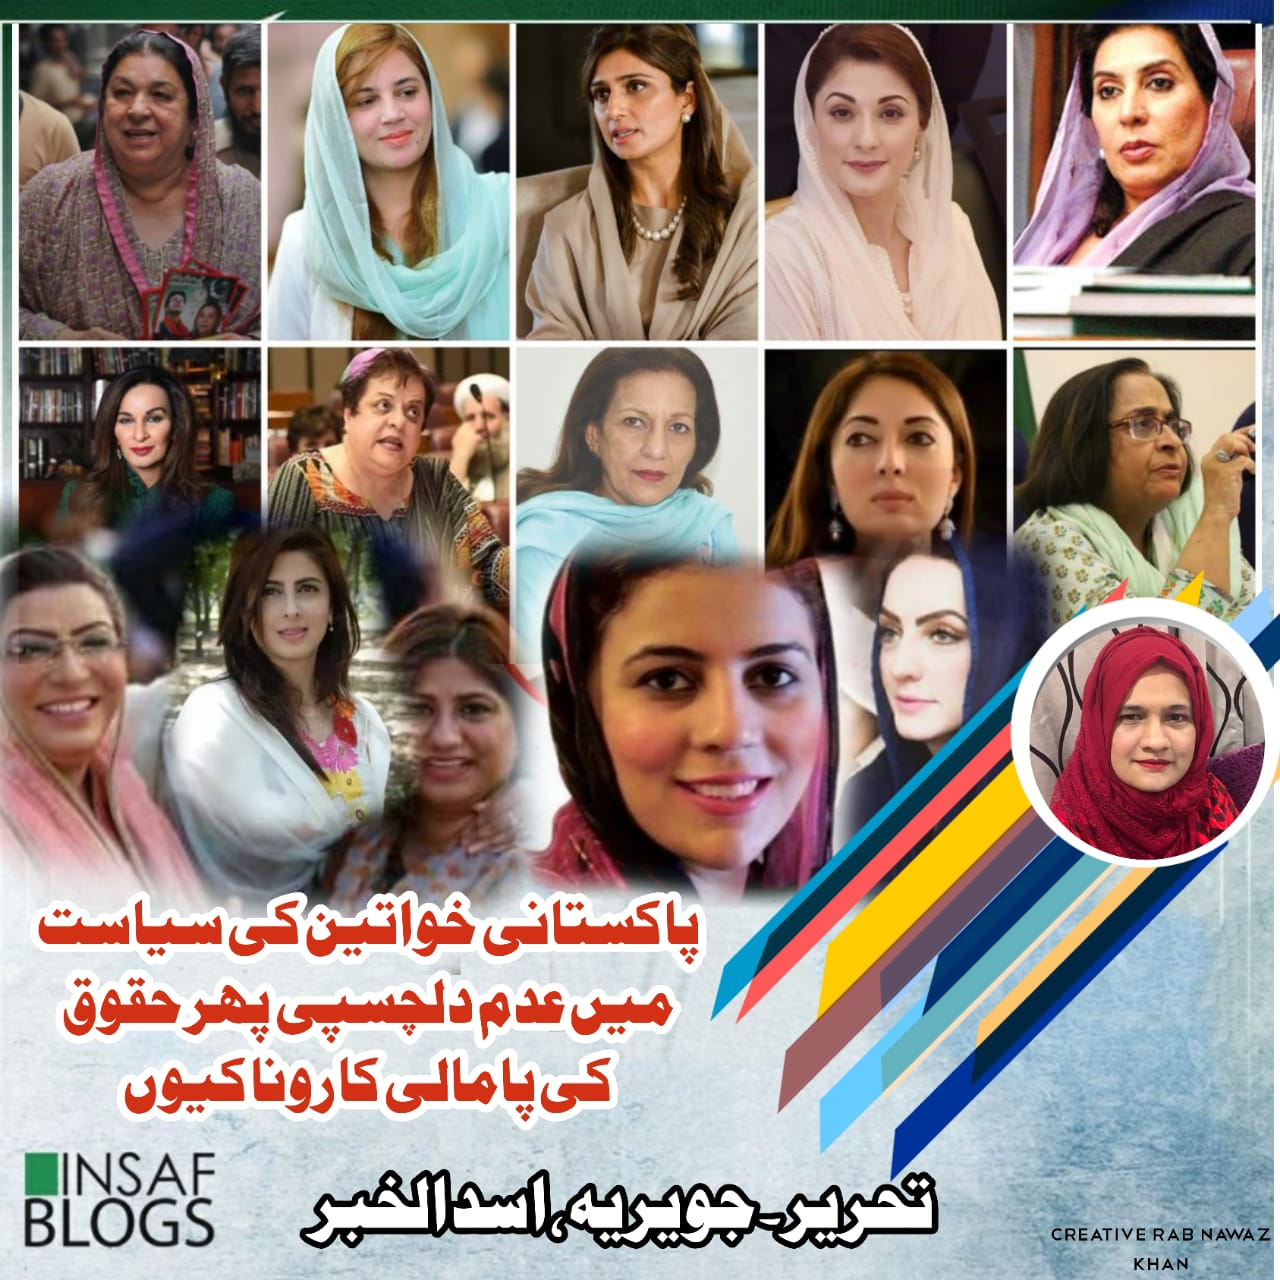 Pakistani Women's Interest In Politics - Insaf Blog